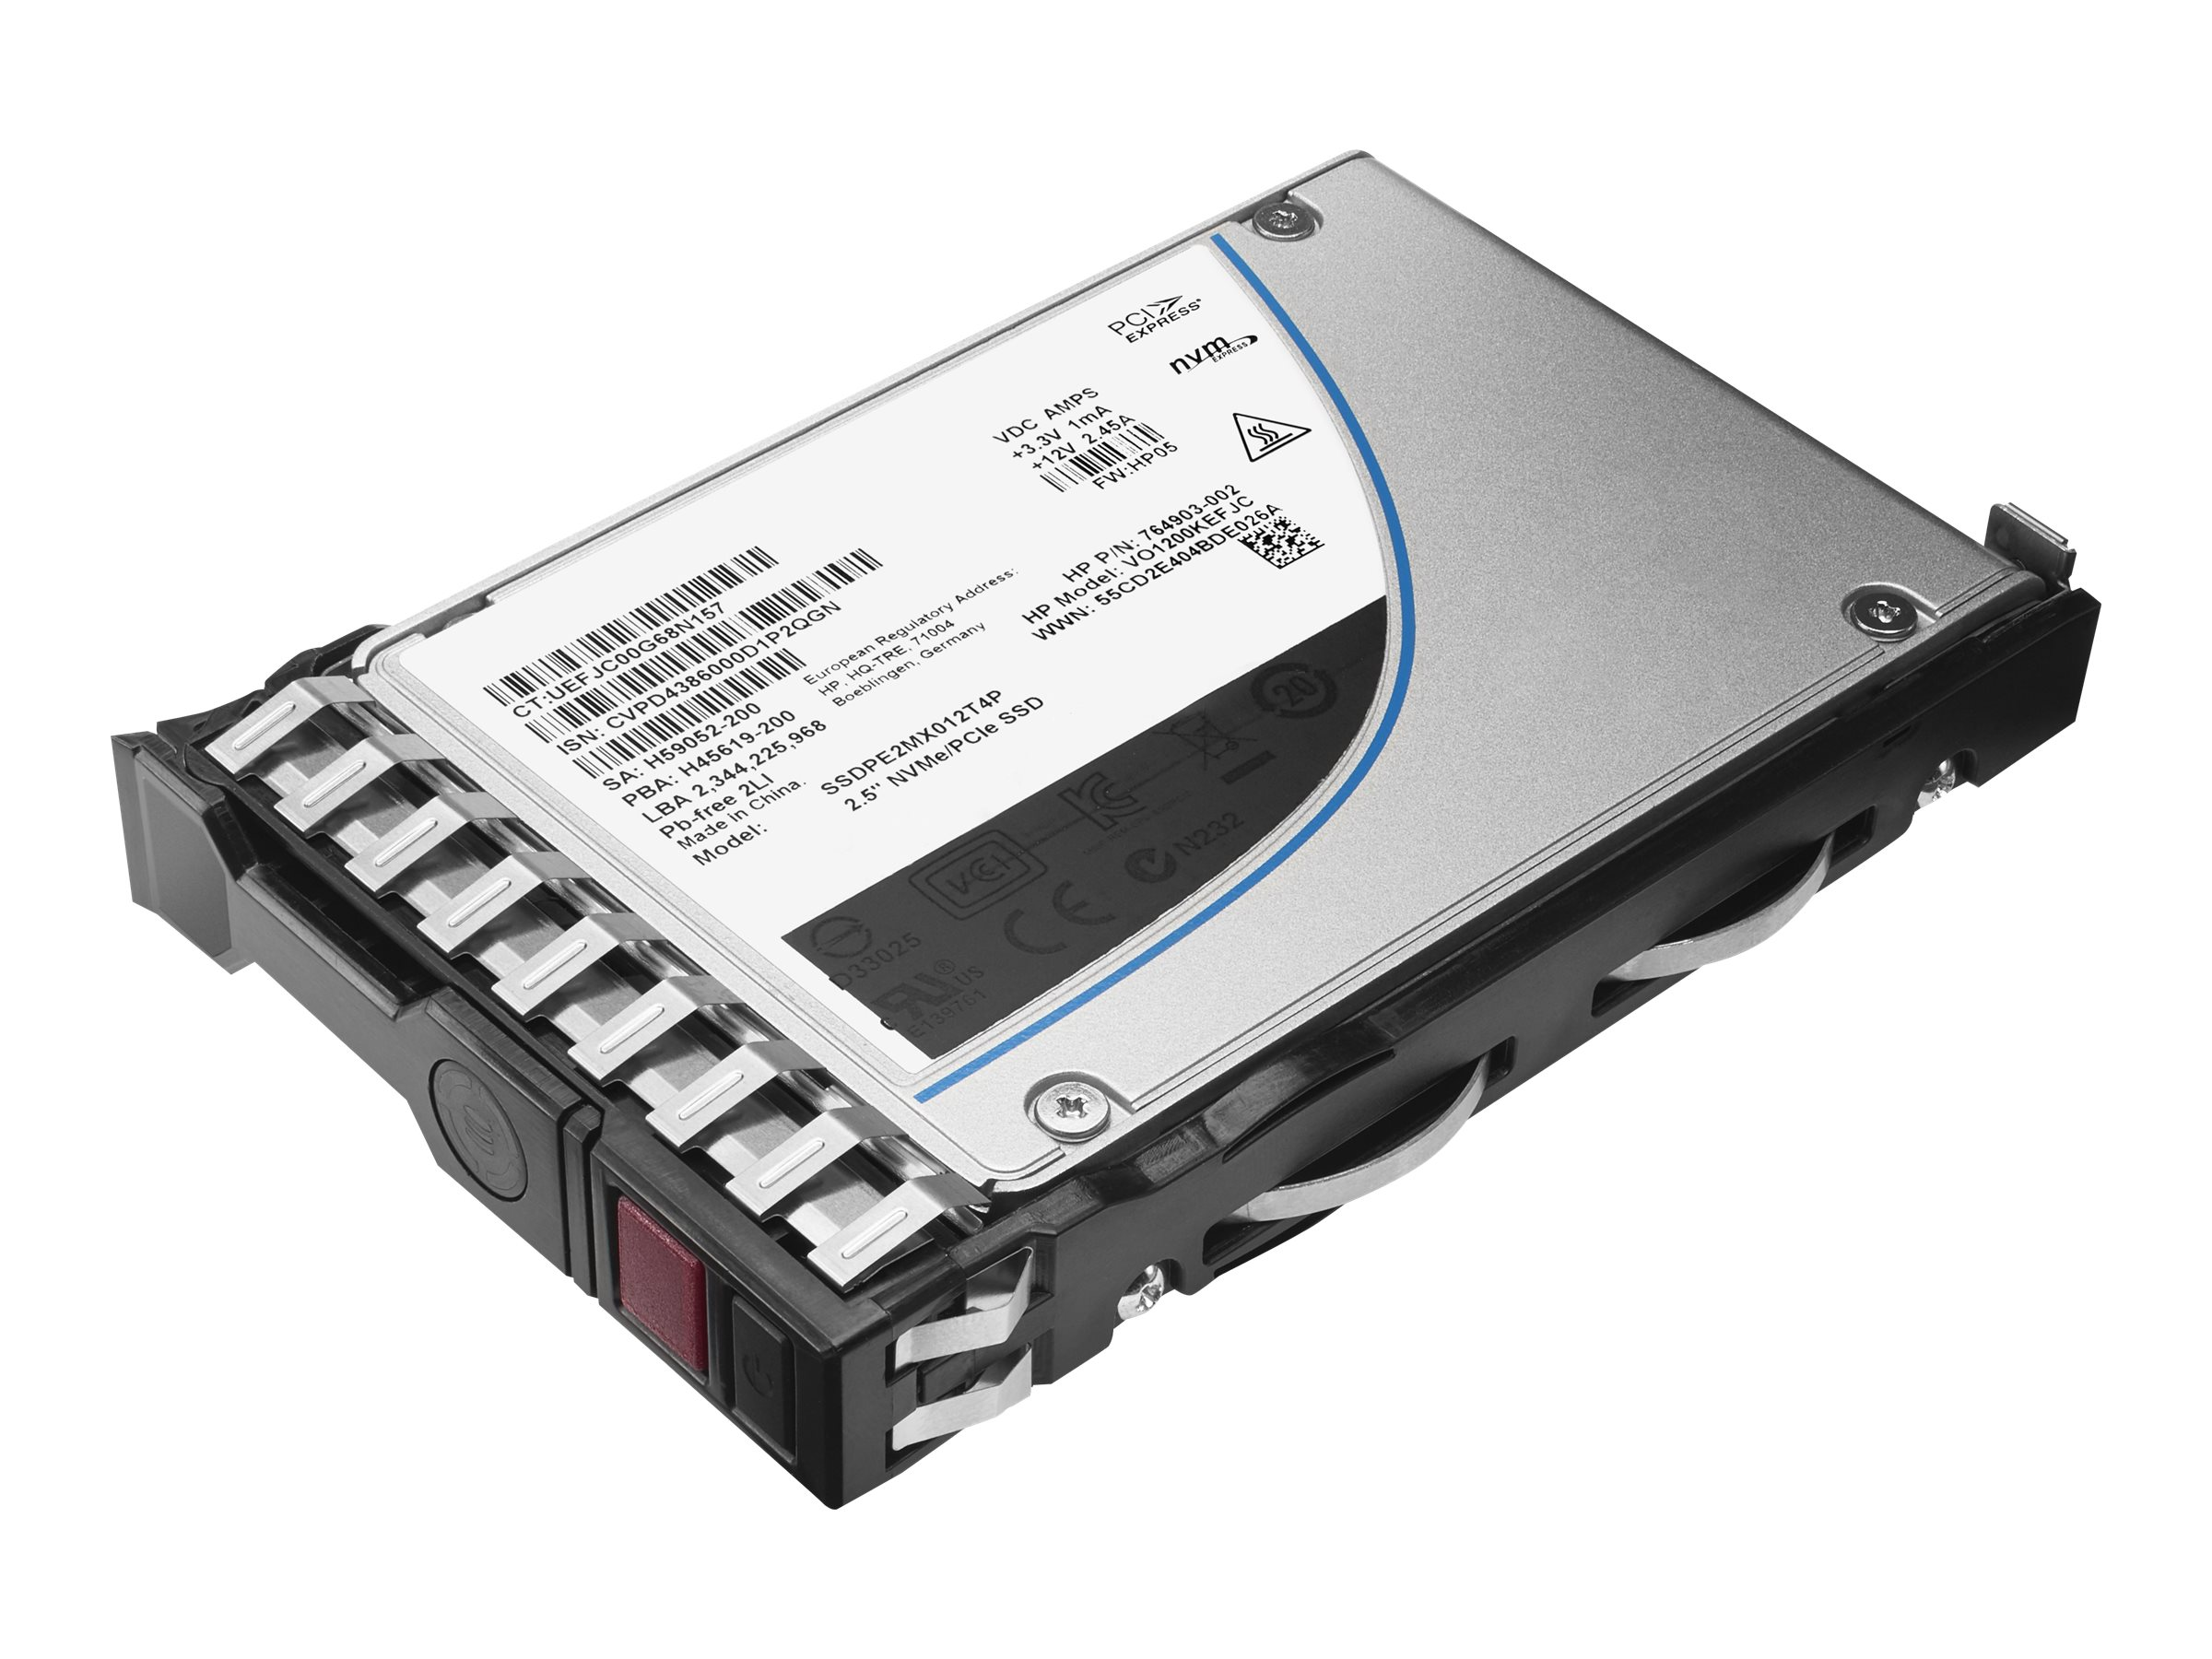 HPE Mixed Use-3 - solid state drive - 120 GB - SATA 6Gb/s